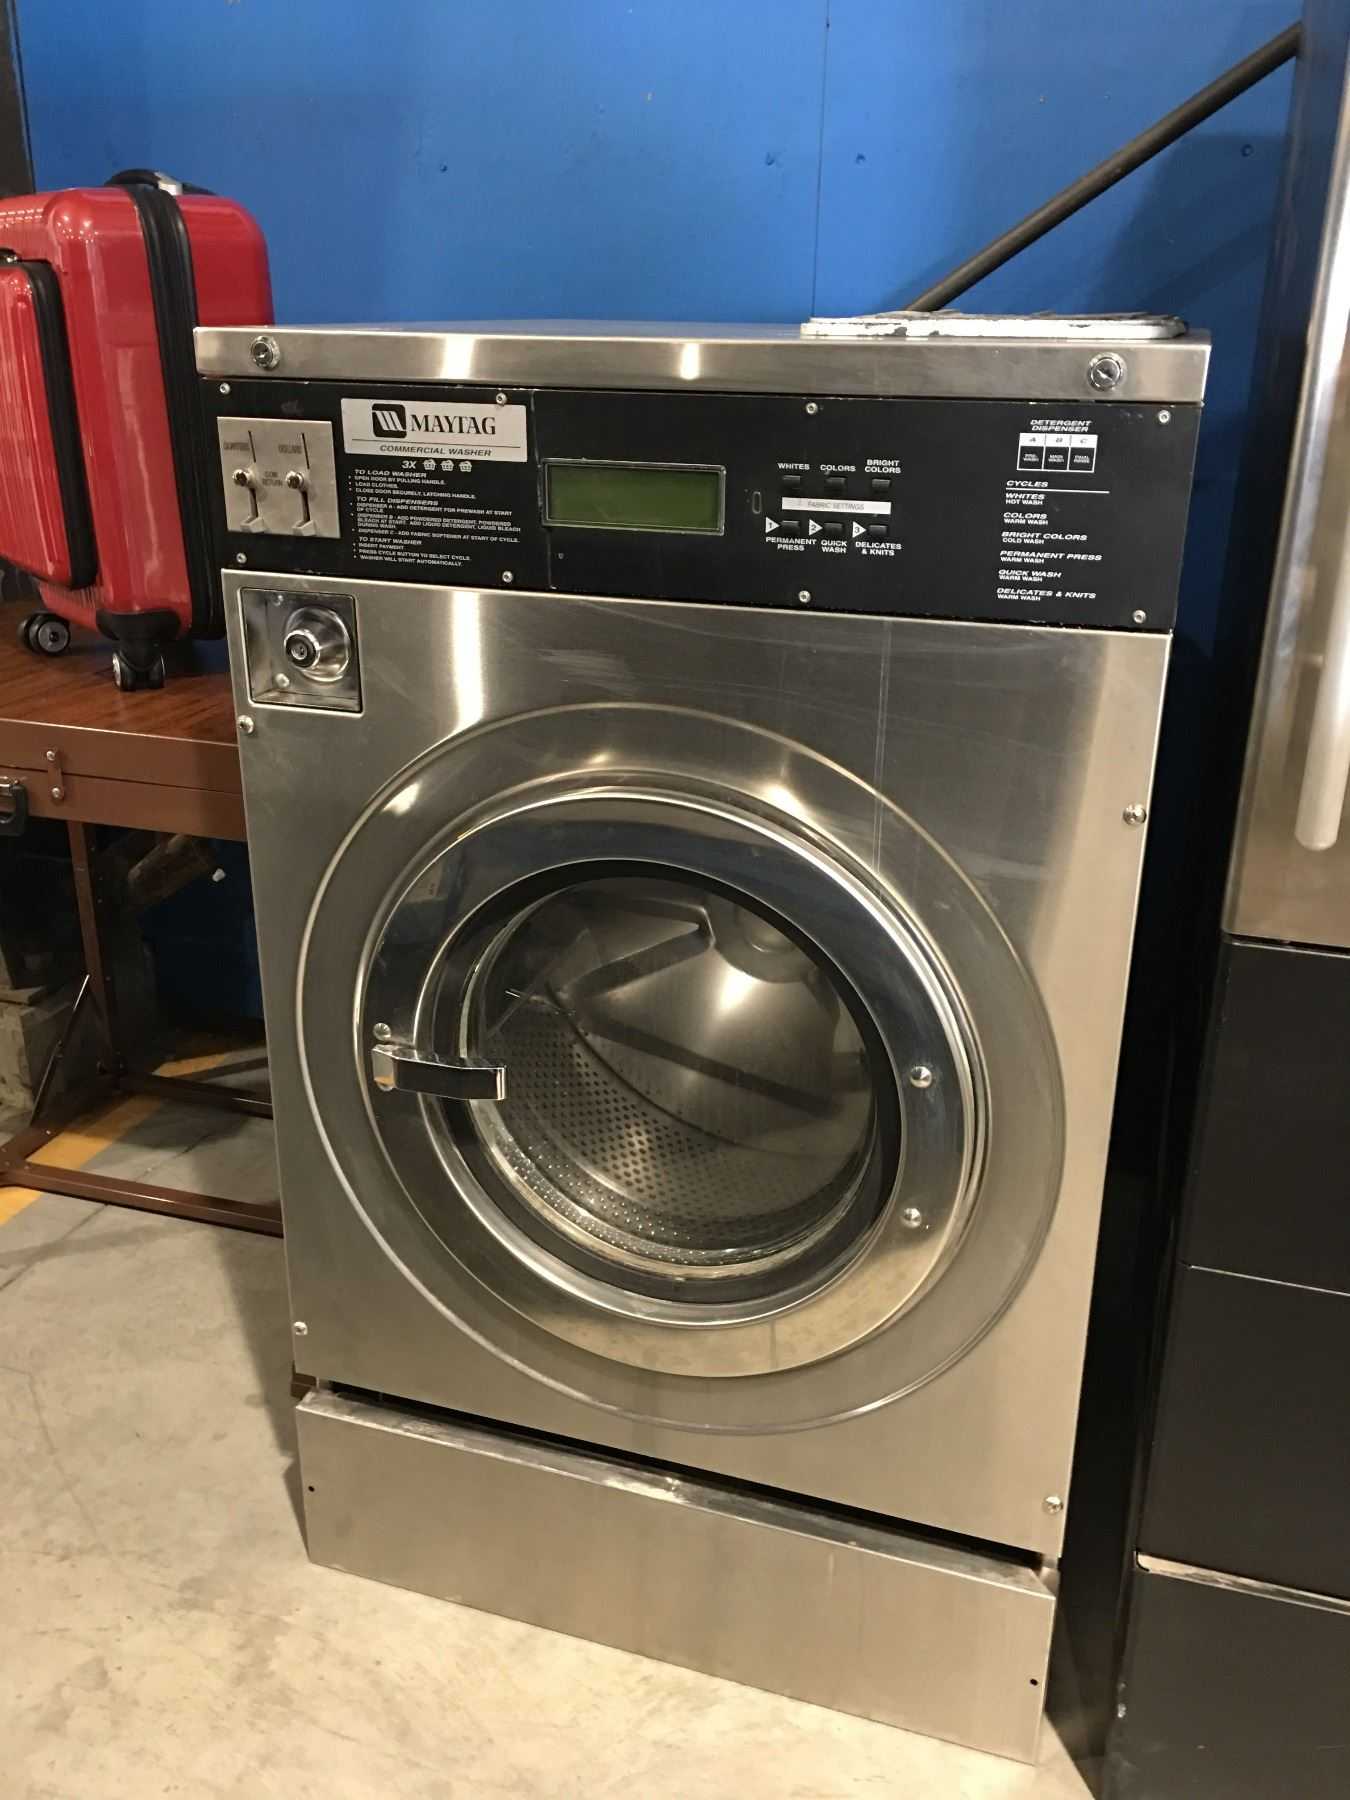 MAYTAG COMMERCIAL STAINLESS STEEL COIN OPERATED WASHER (HAS